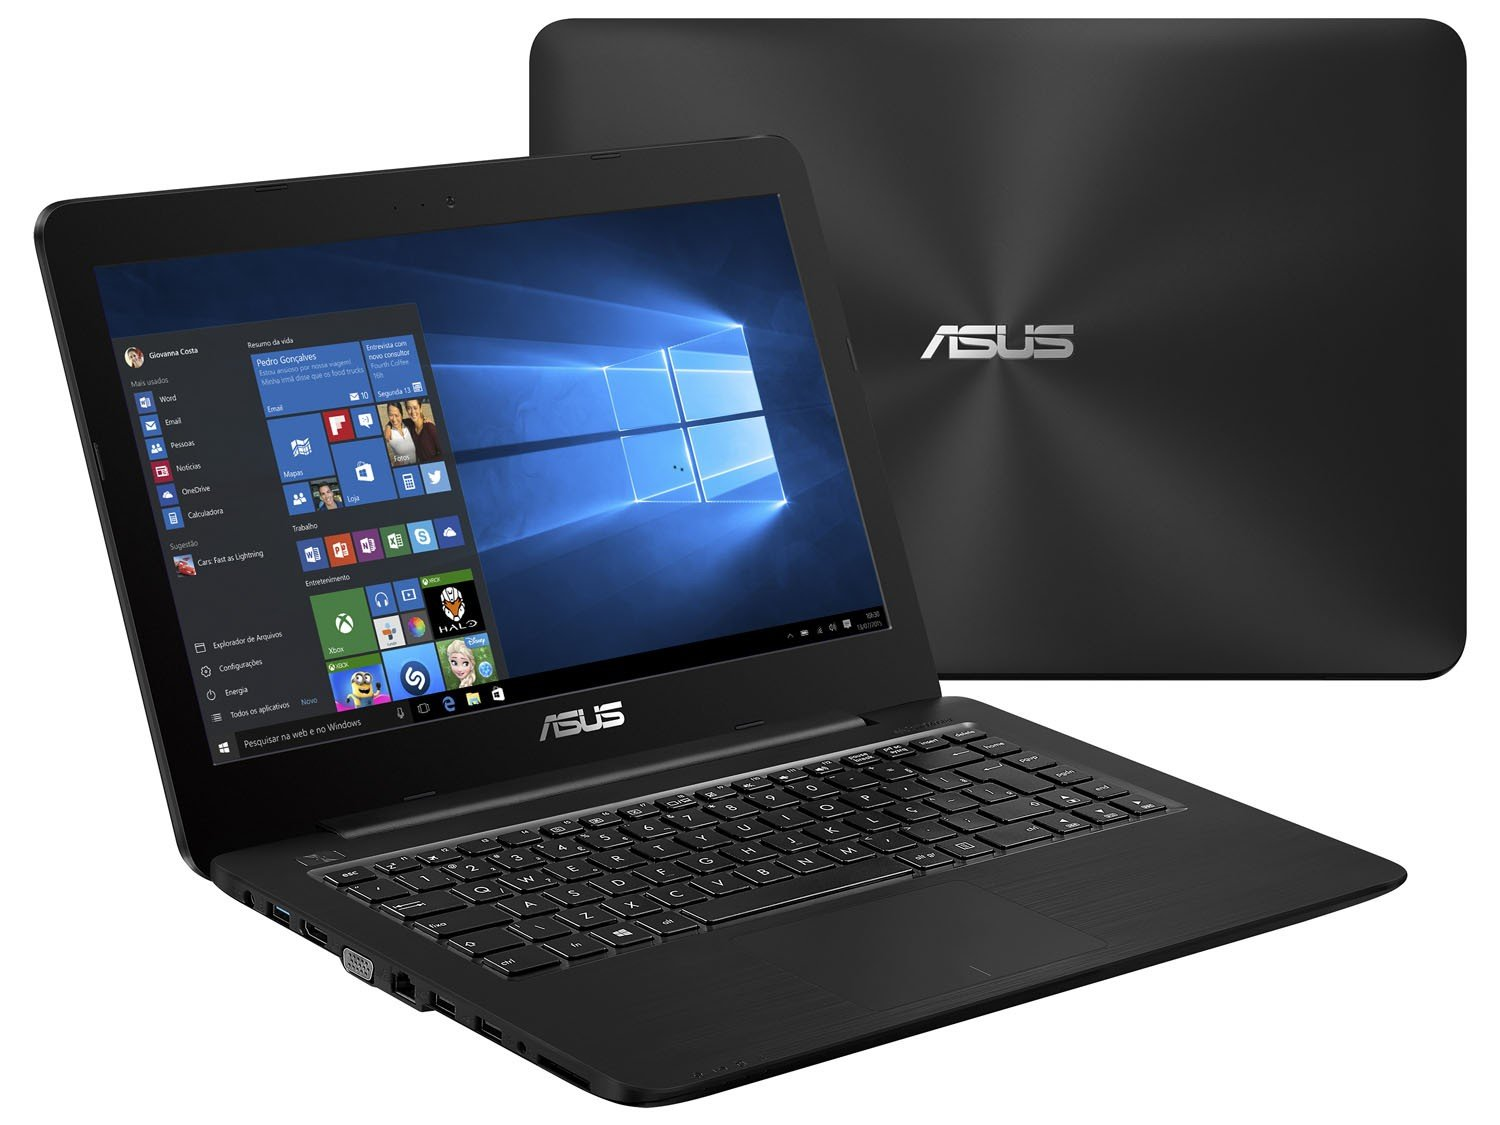 Notebook Asus Z450 Intel Core I5 8GB 1TB LED 14 Windows